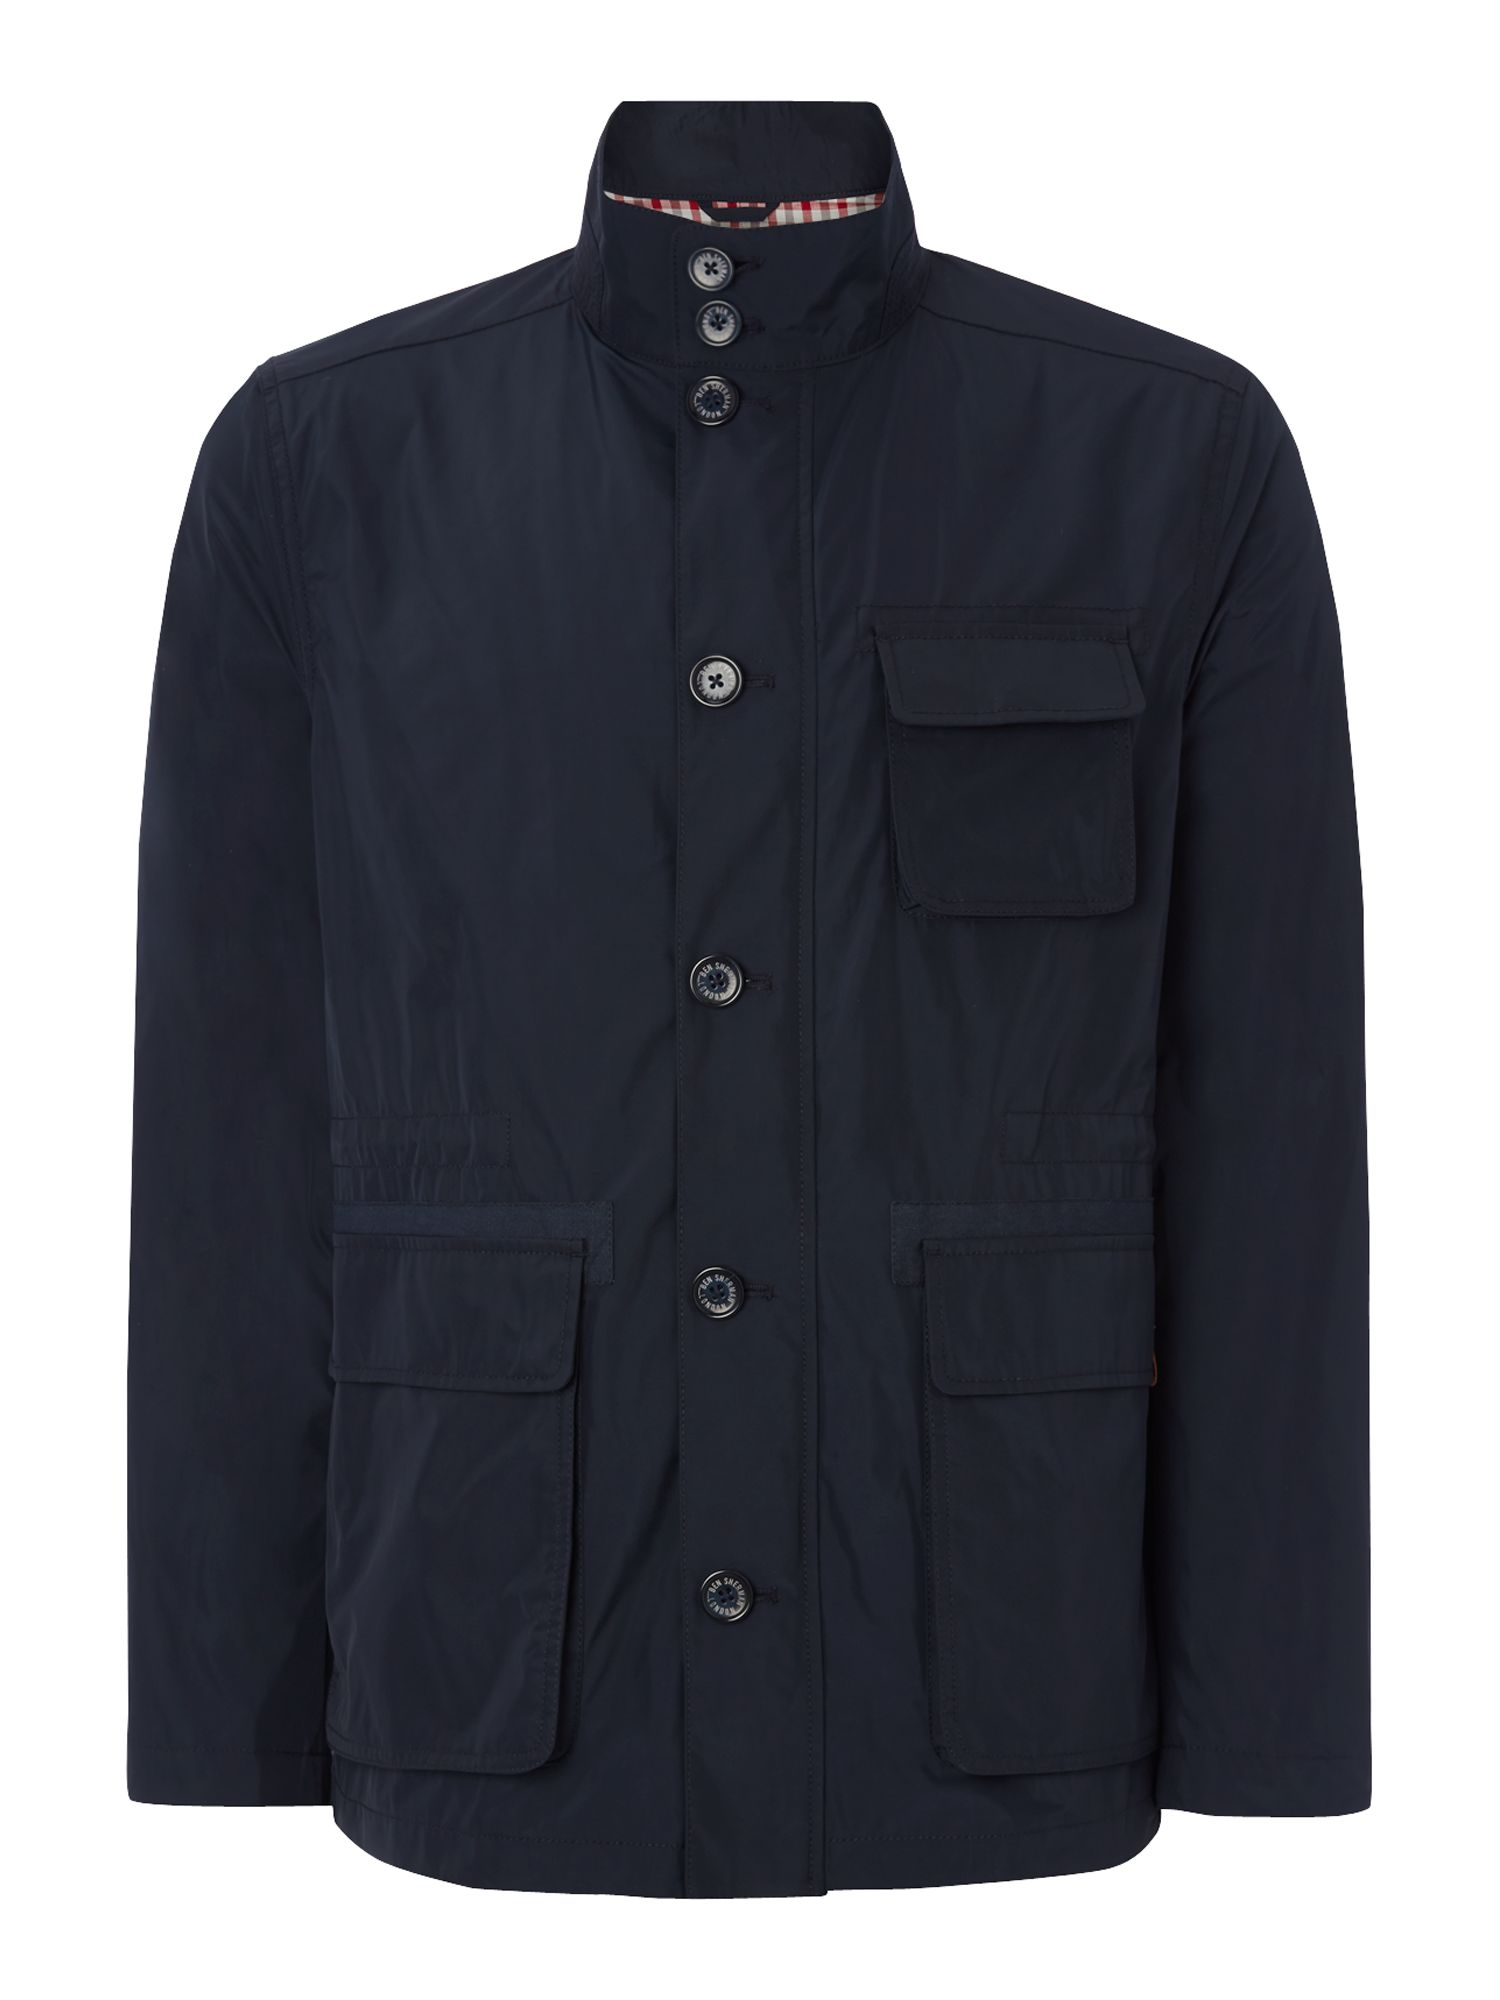 Memory nylon field jacket